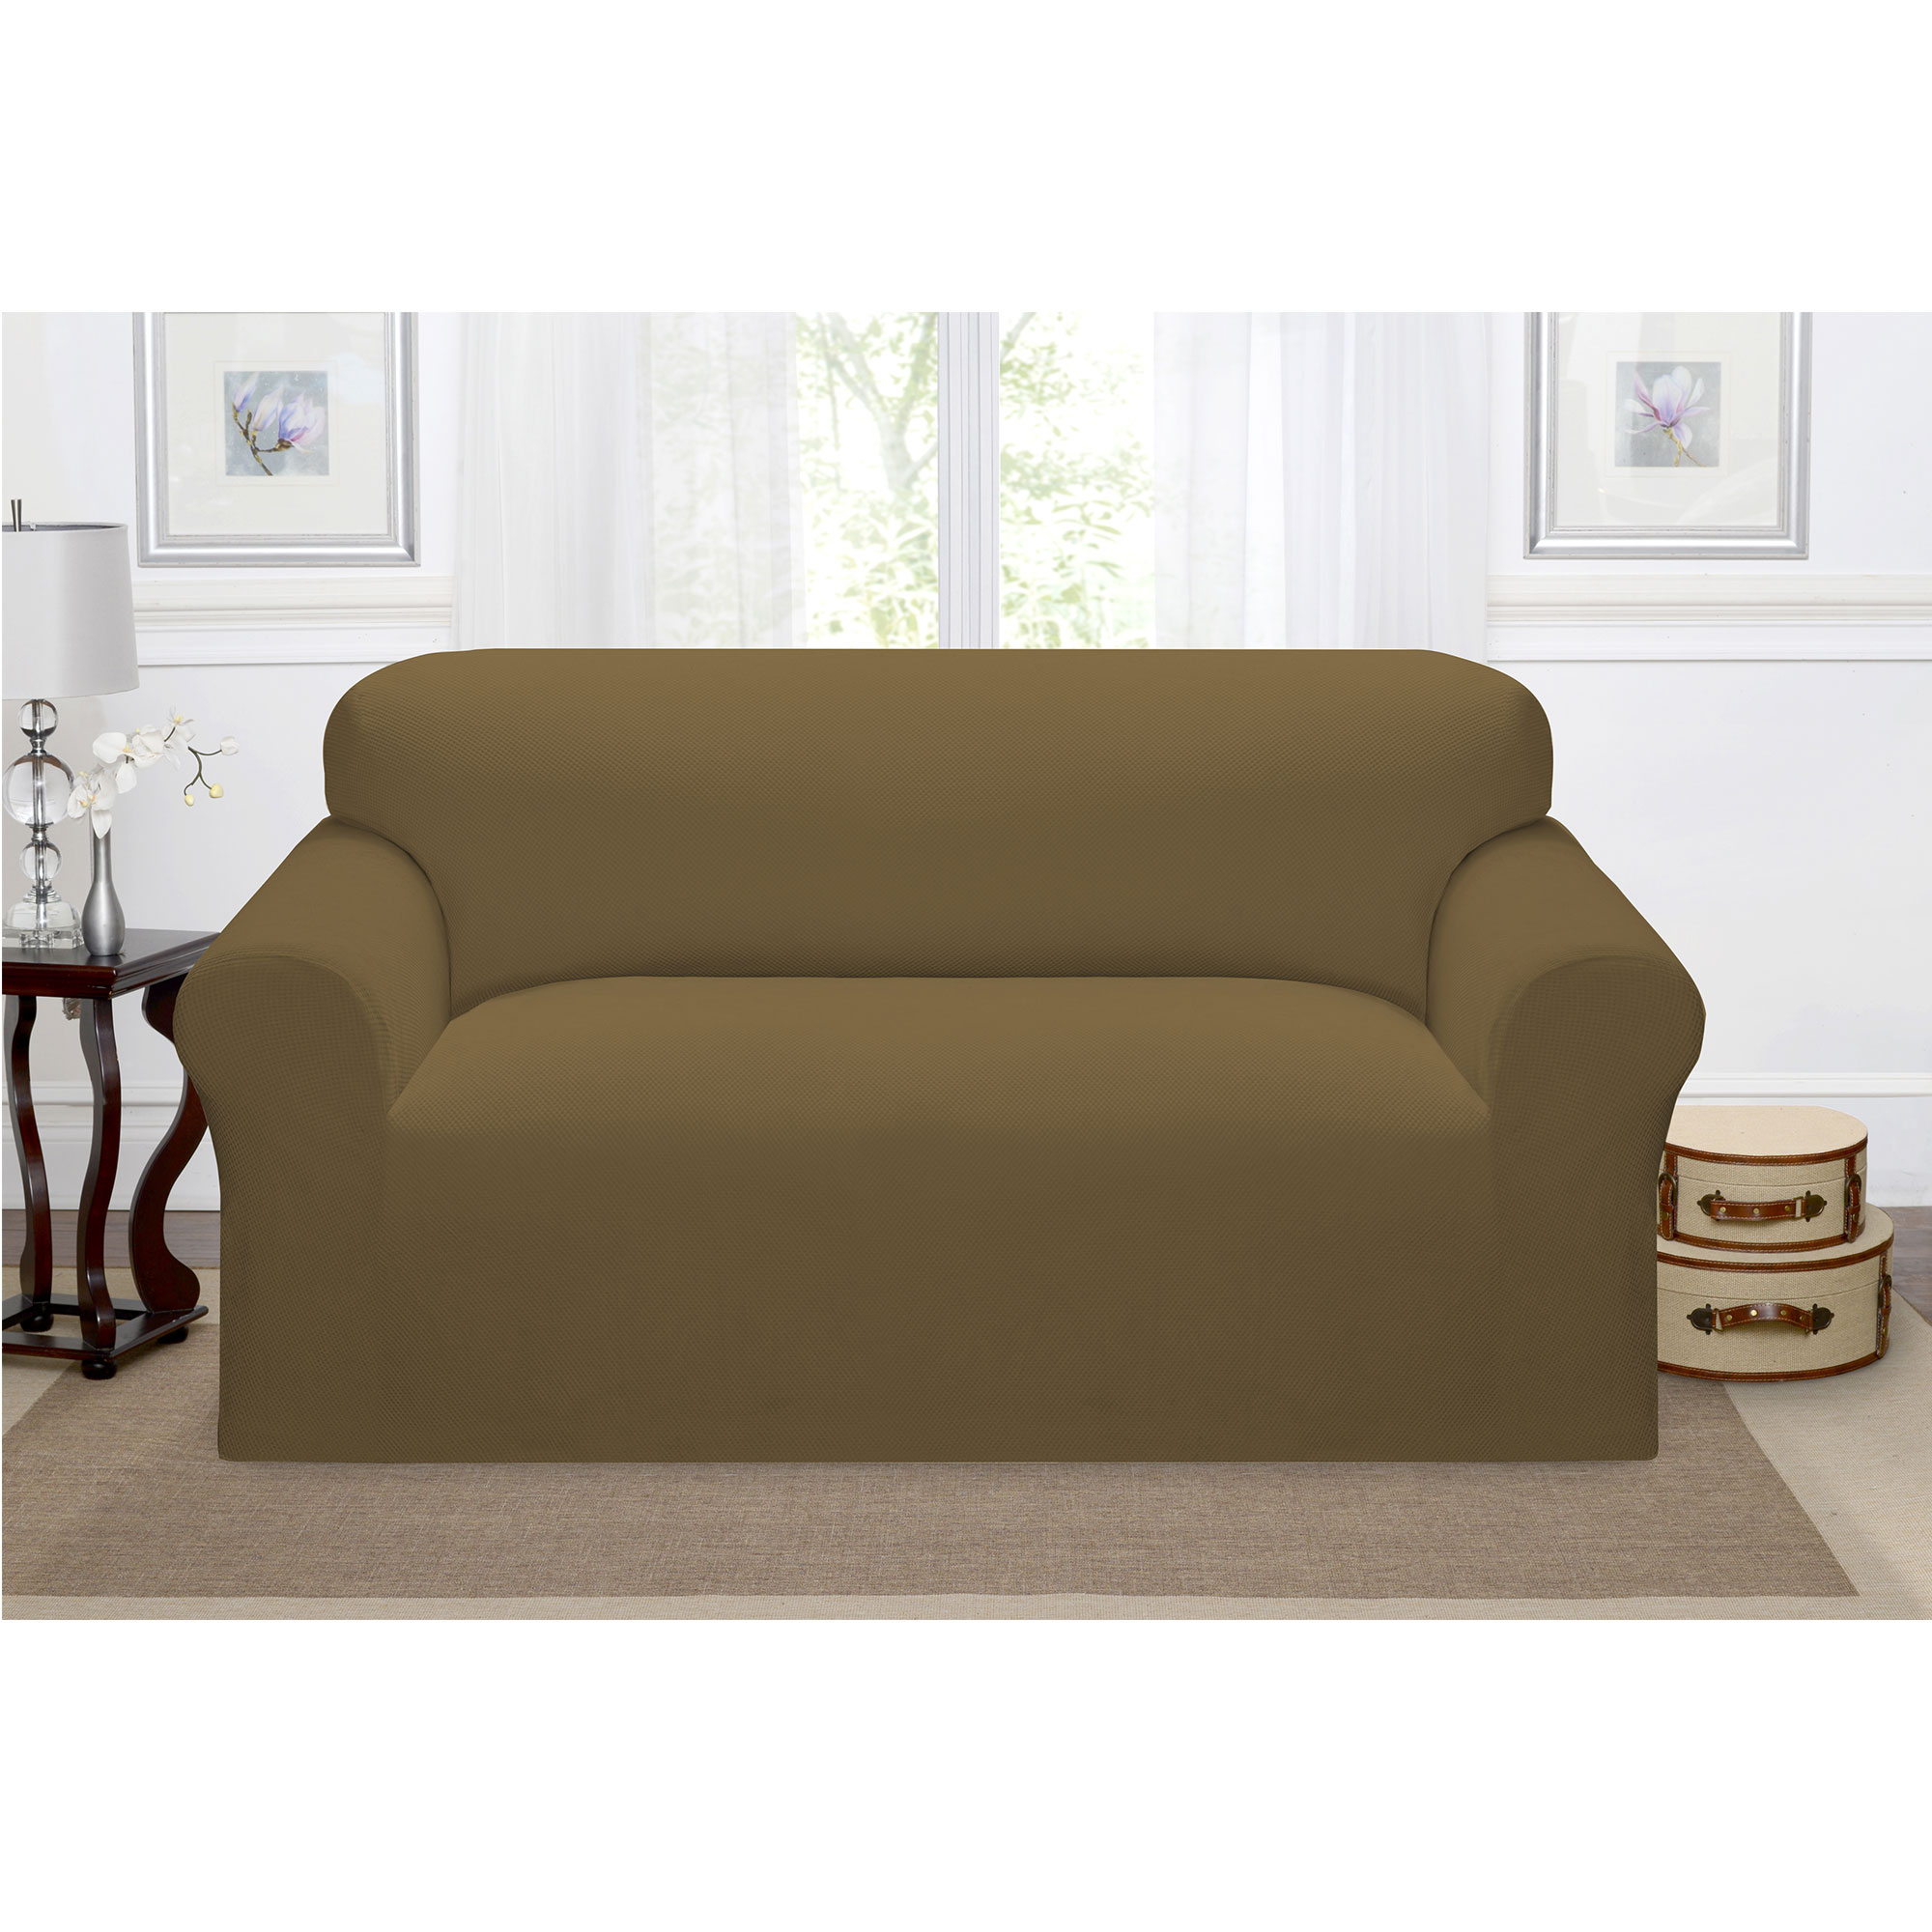 Madison Home Stretch Pique Furniture Slipcover, Soft Waffle Textured Pattern (Loveseat, Chestnut)